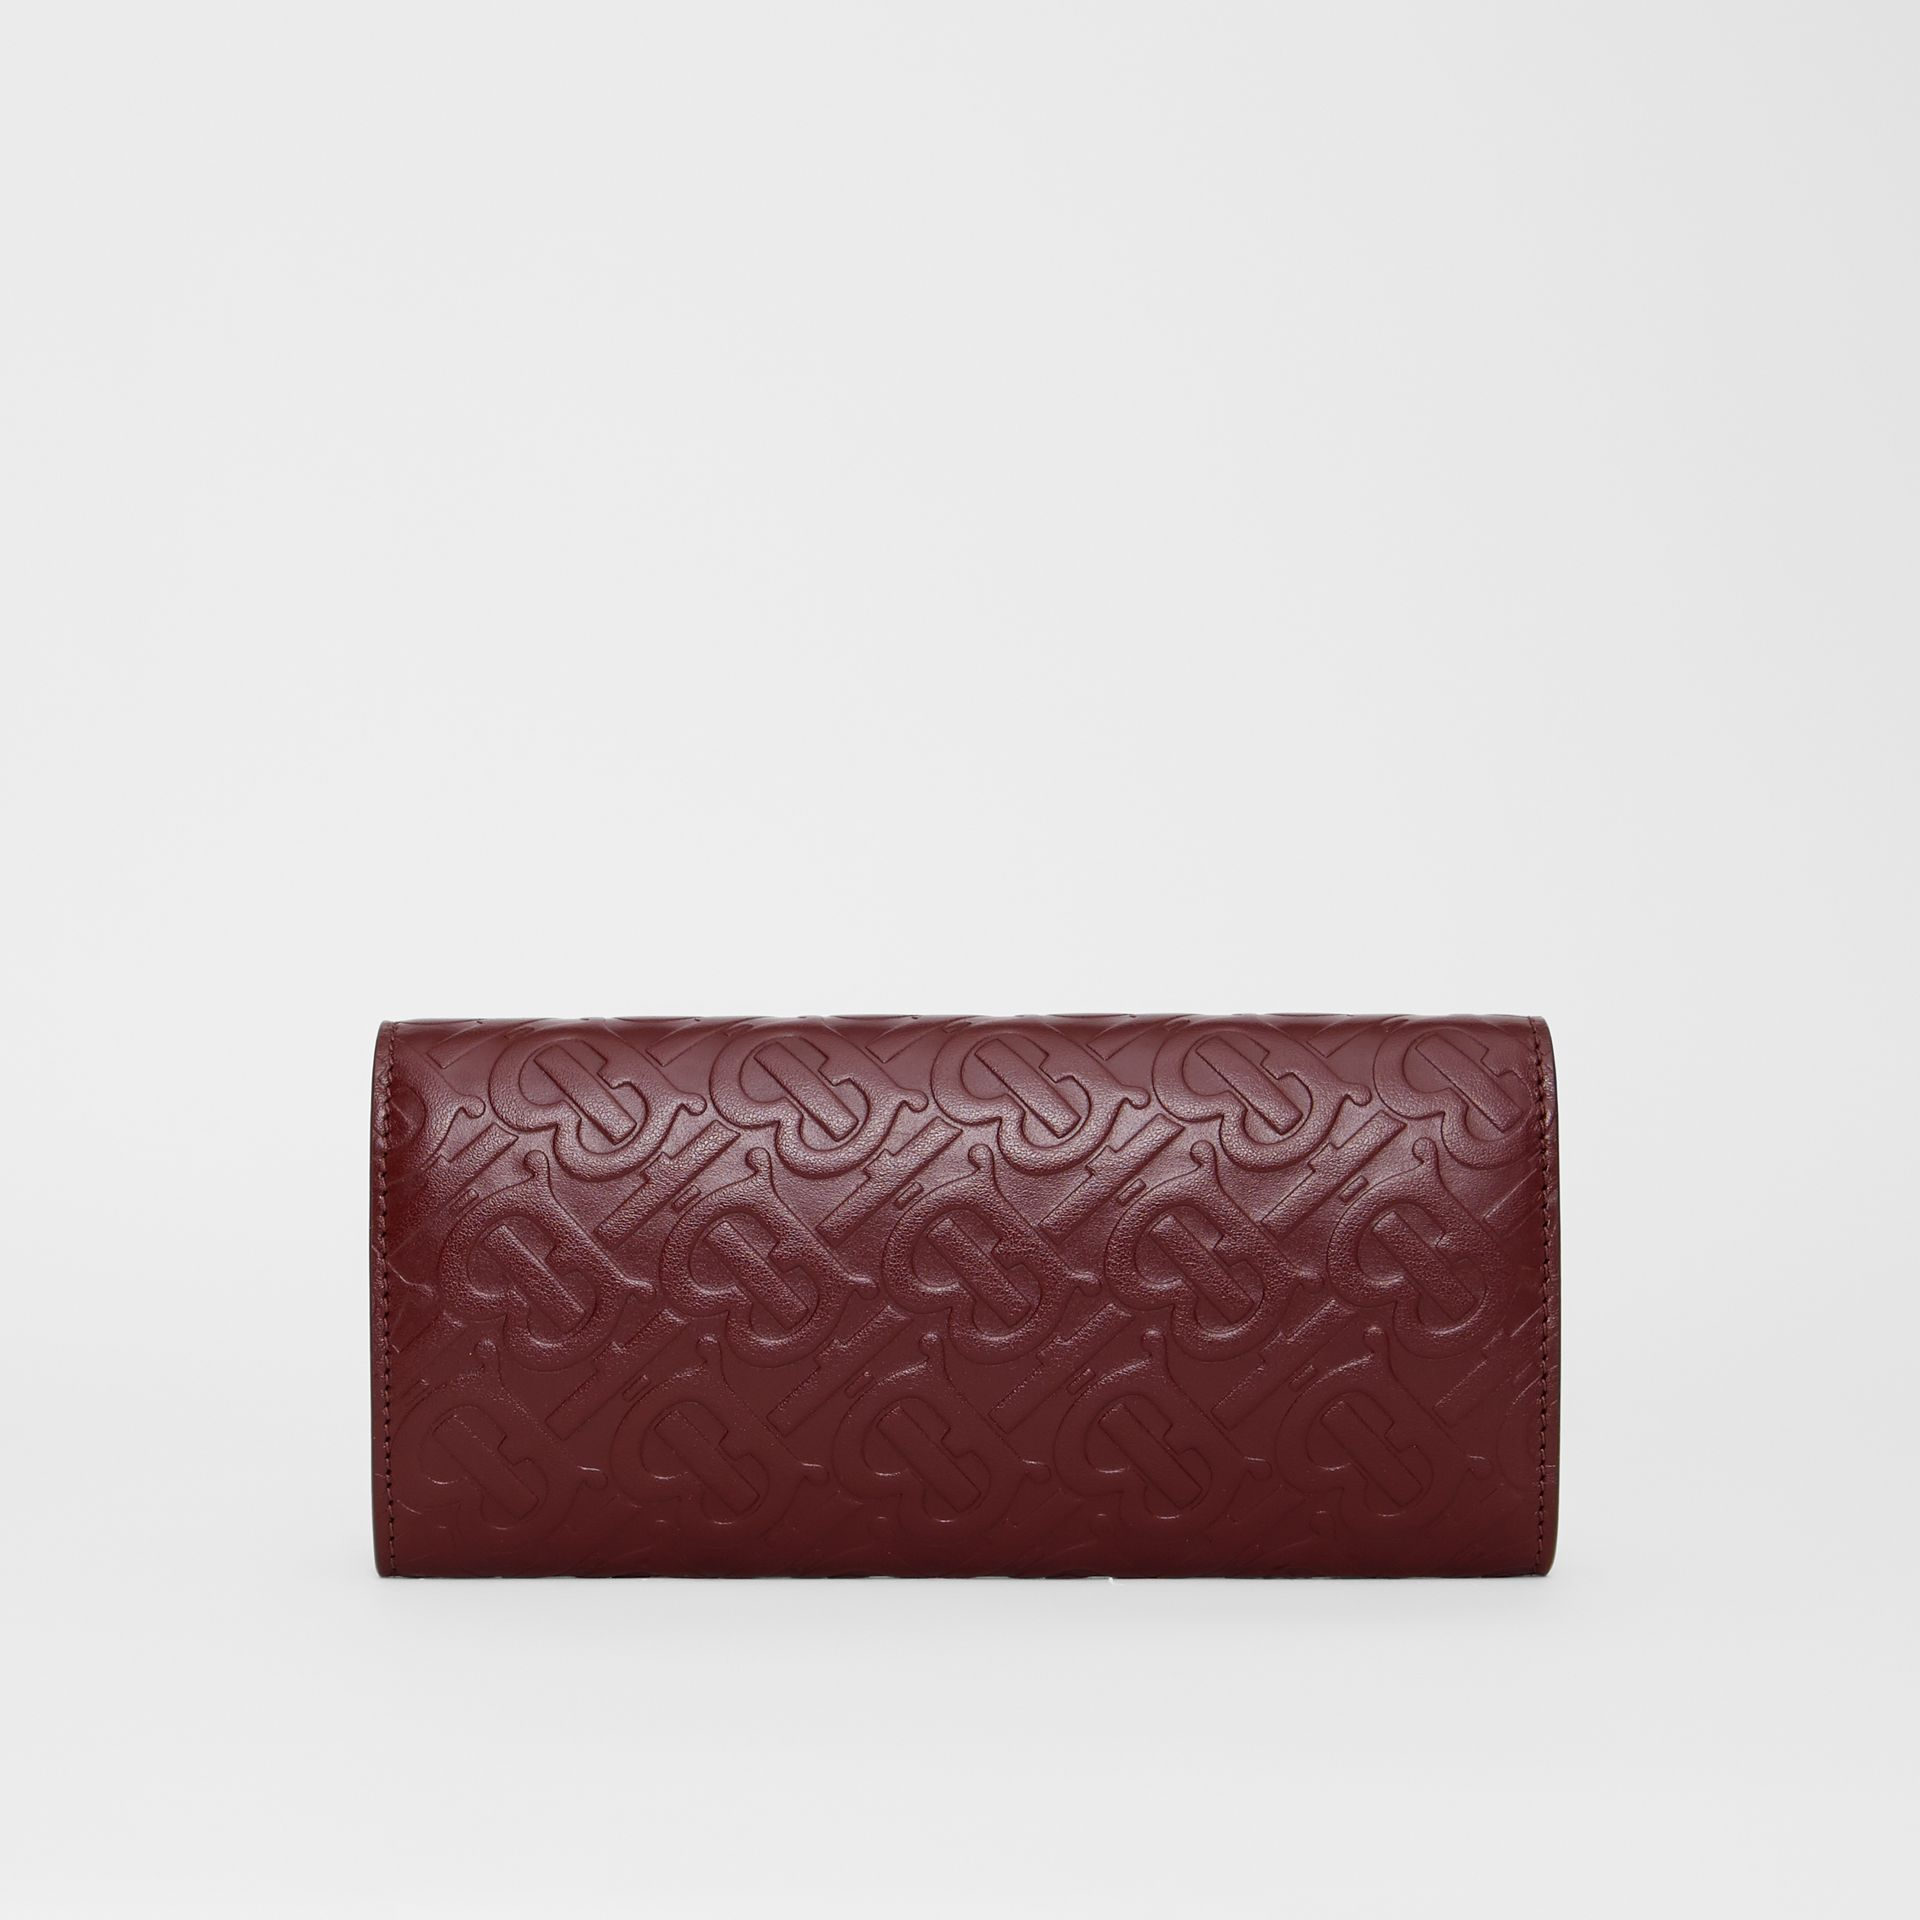 Monogram Leather Continental Wallet in Oxblood - Women | Burberry Canada - gallery image 5